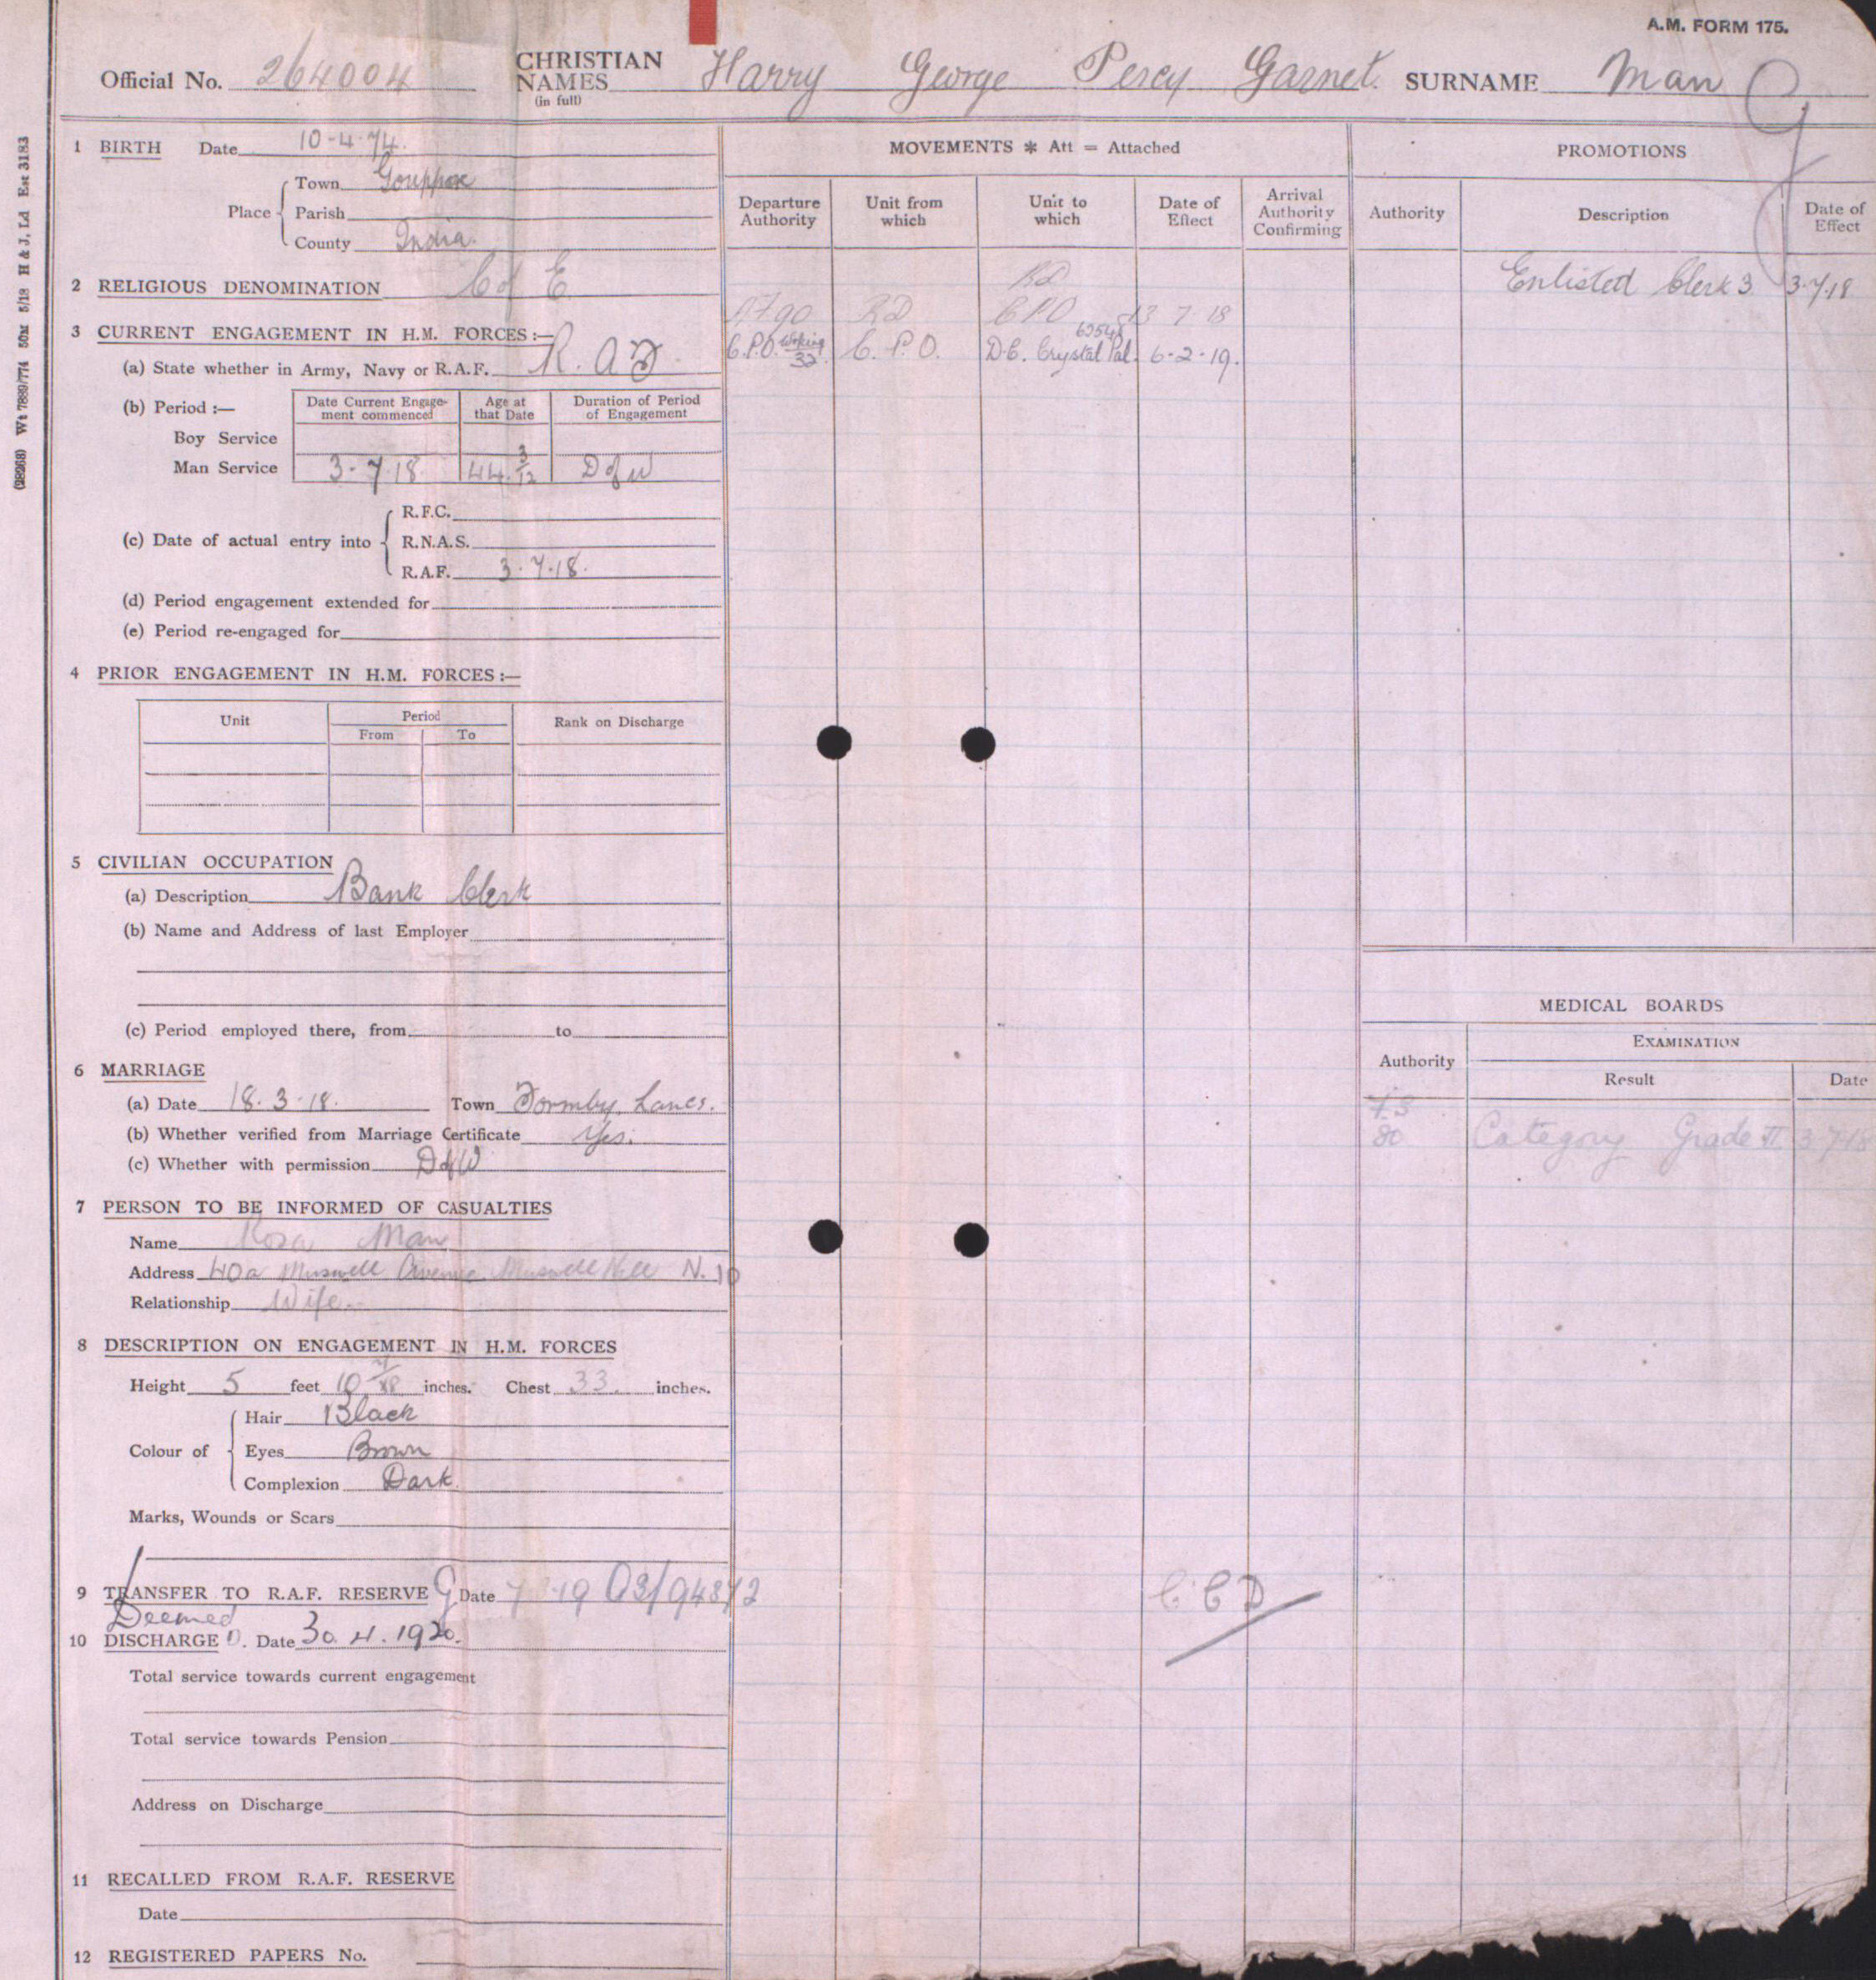 Harry George Percy Garnet Man service record